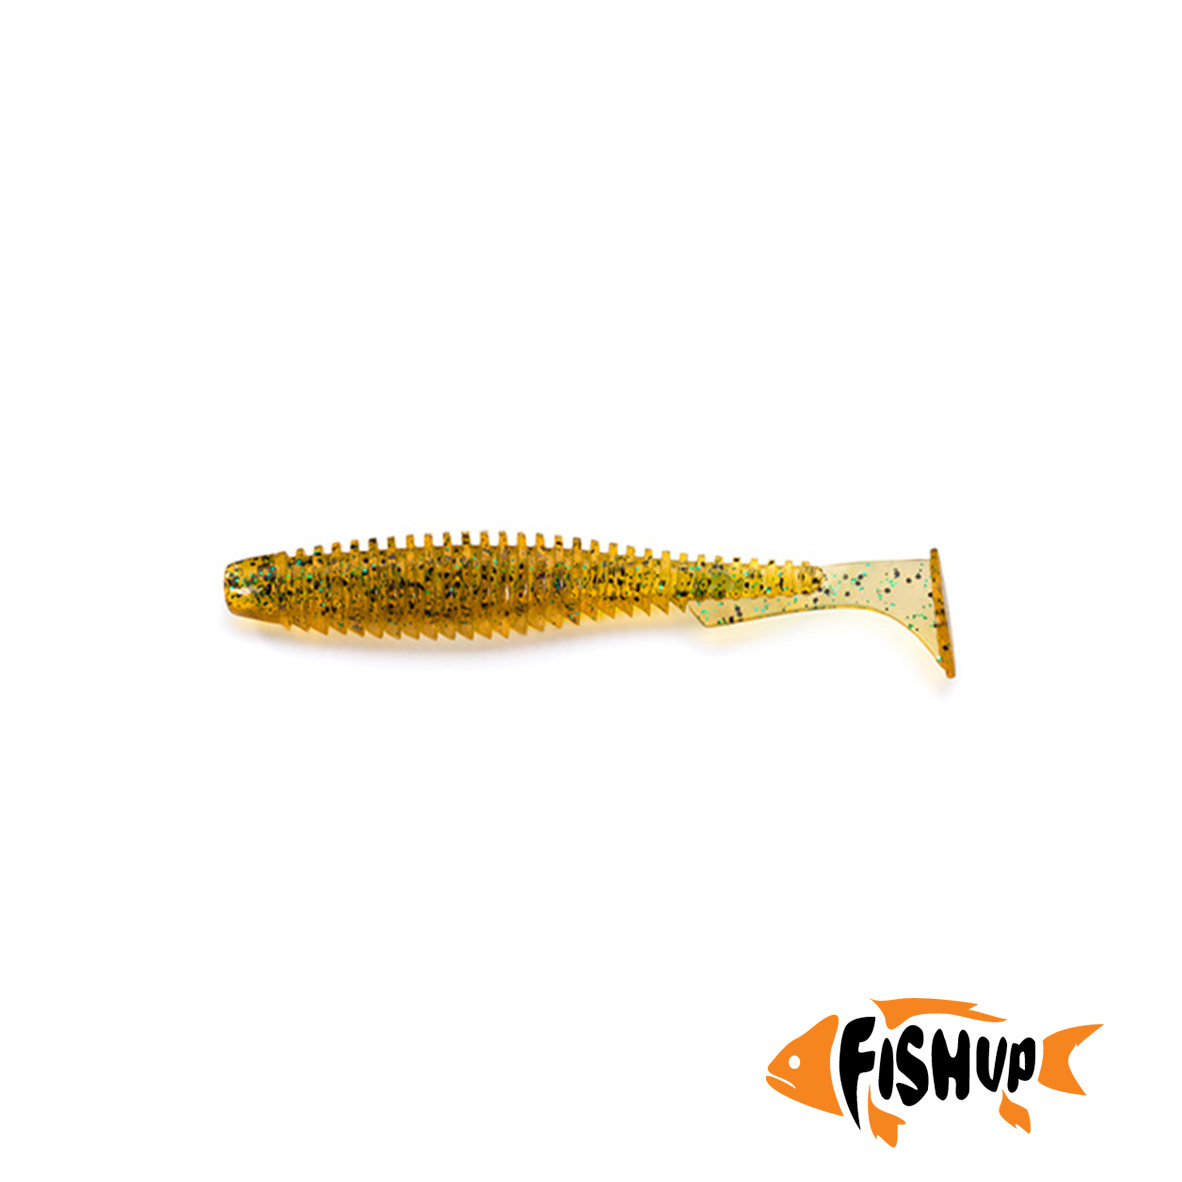 "U-Shad 4"" (8шт), #036 - Caramel/Green & Black"